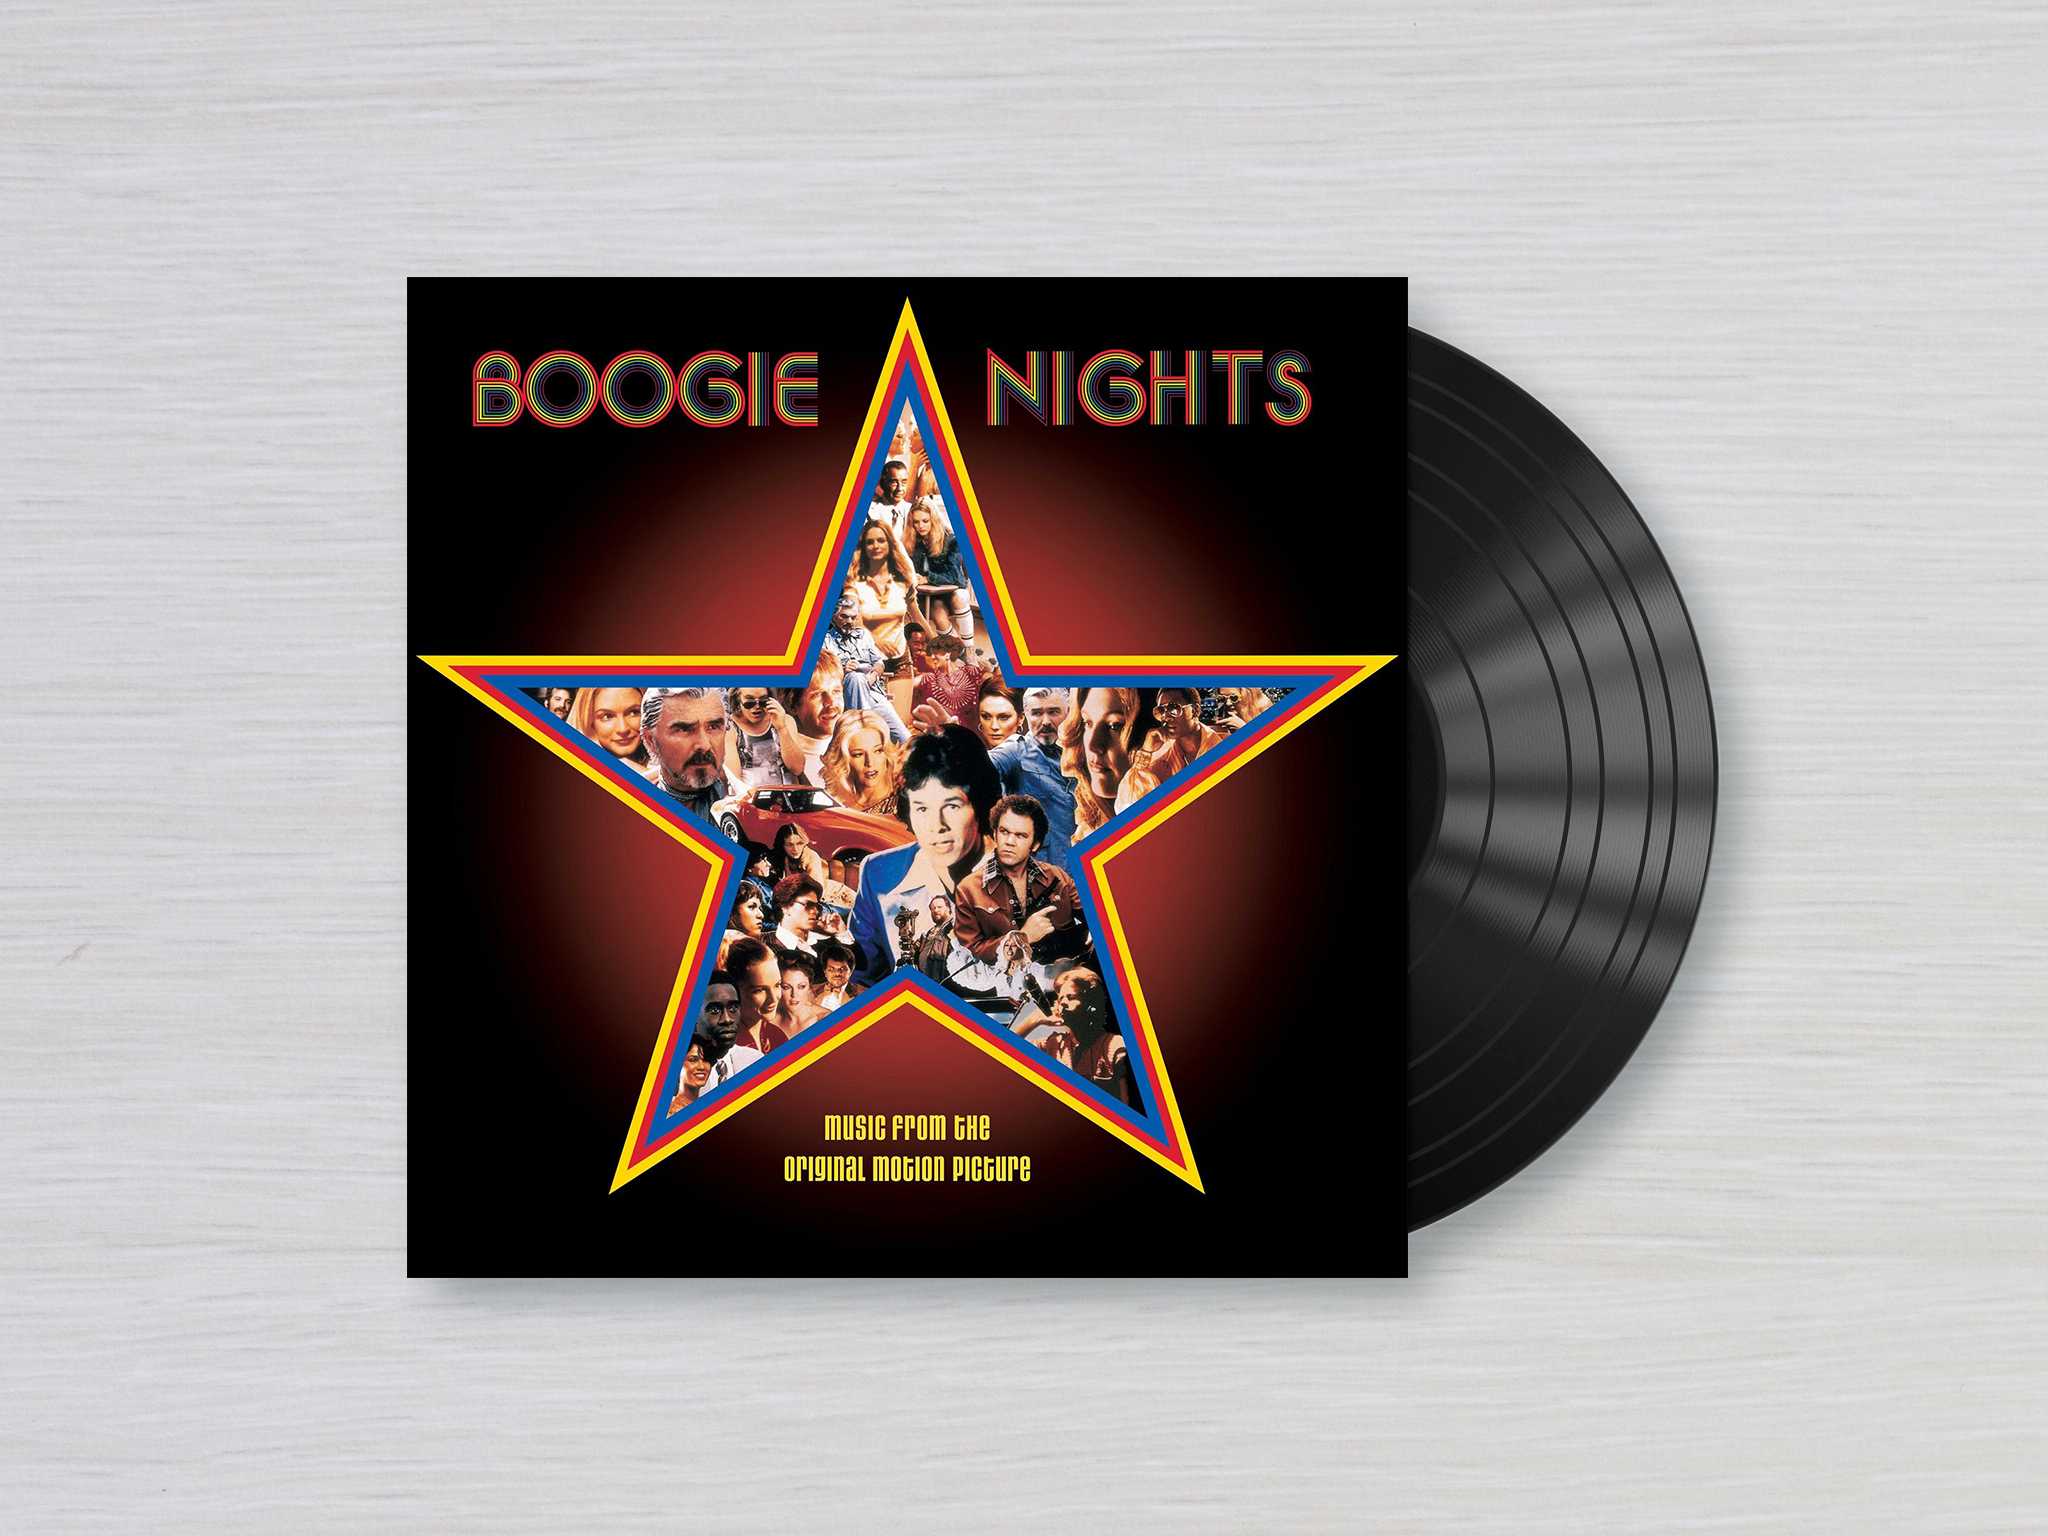 El soundtrack de la película Boogie Nights